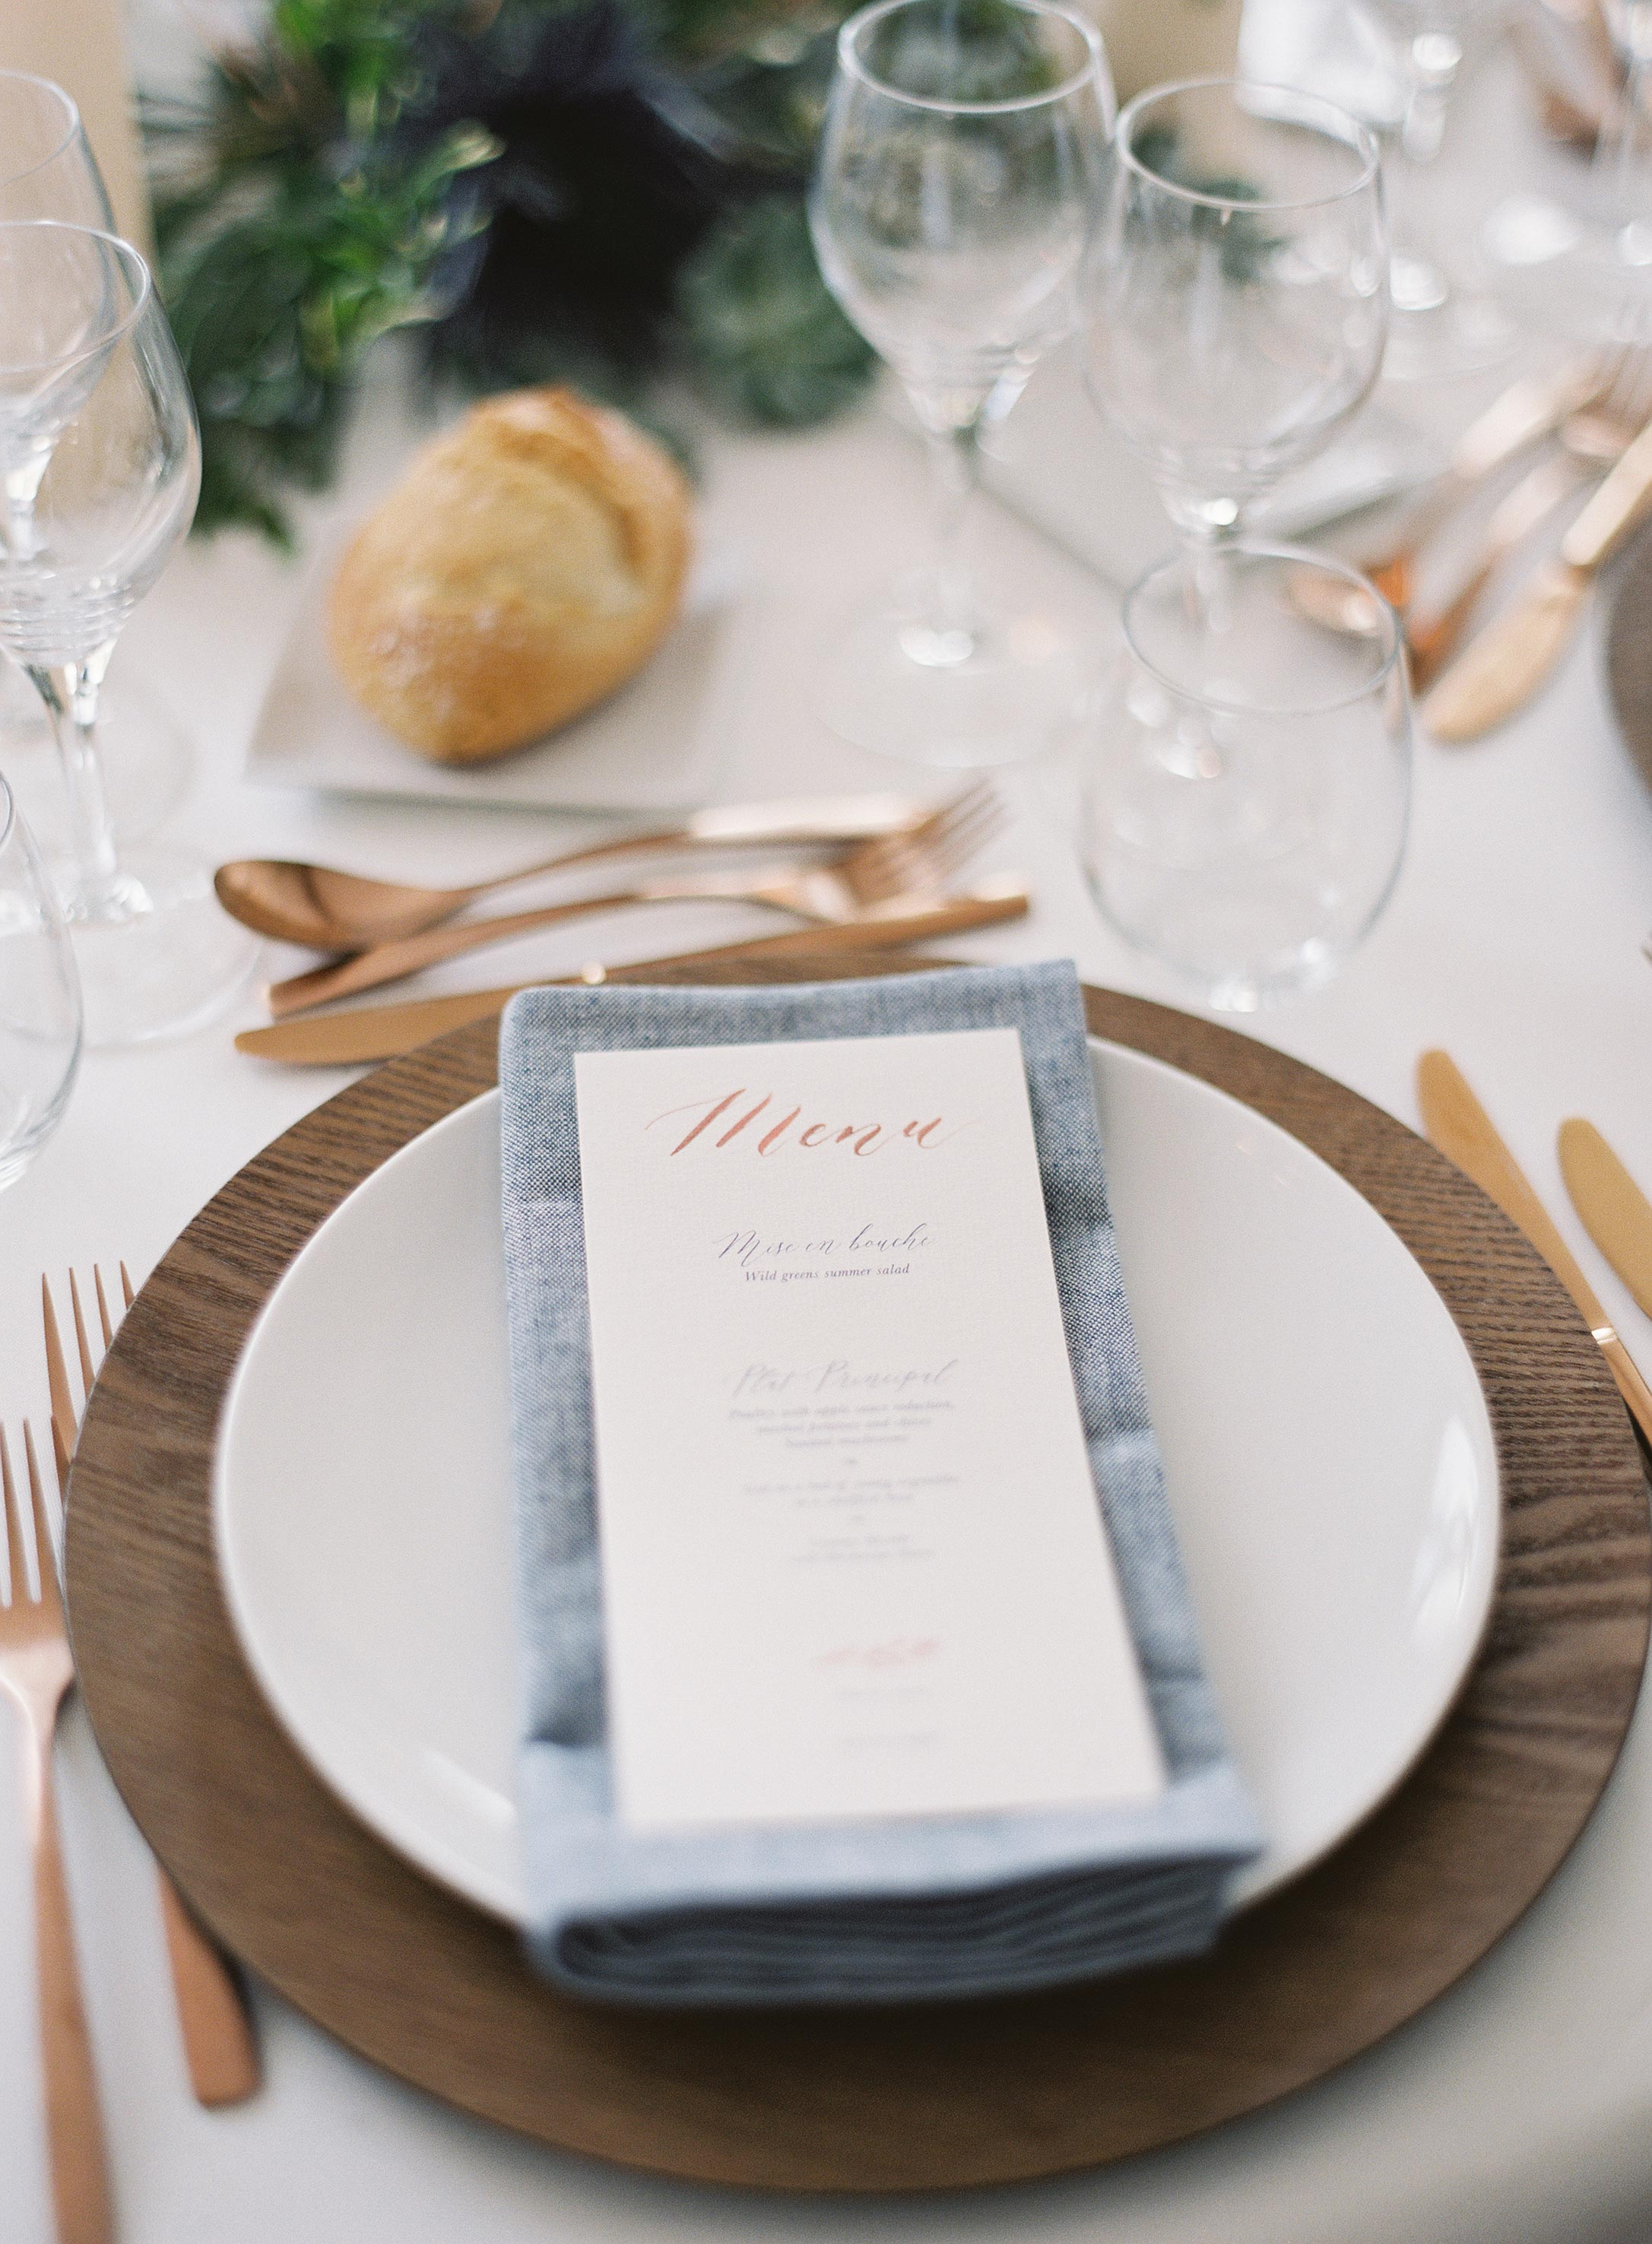 placesetting and menu